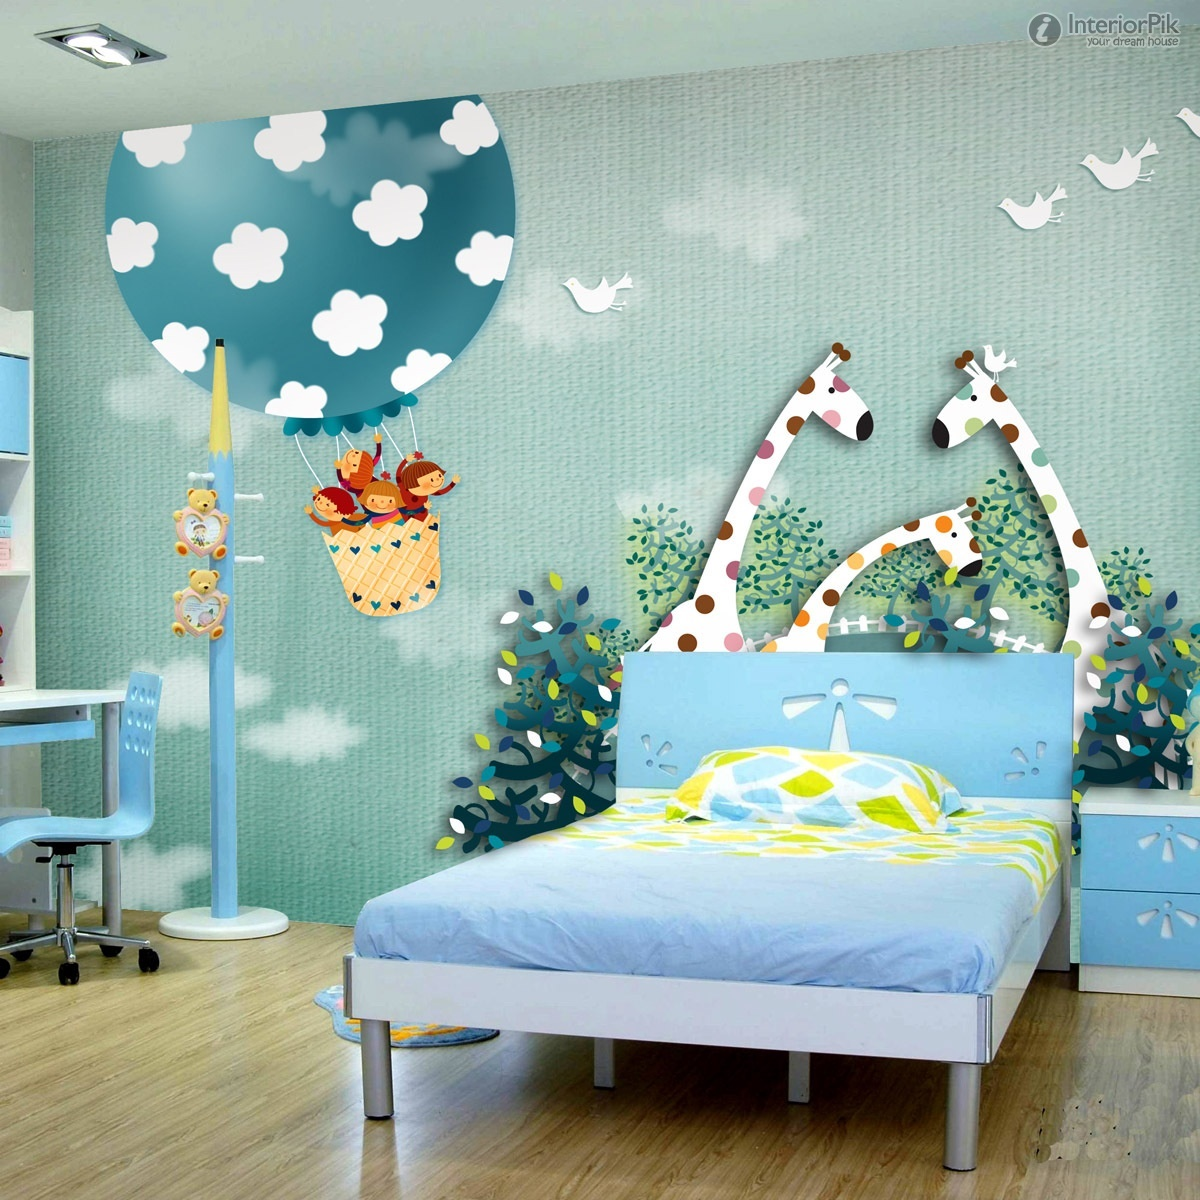 Childrens bedroom wallpaper ideas home decor uk for Children wall mural ideas